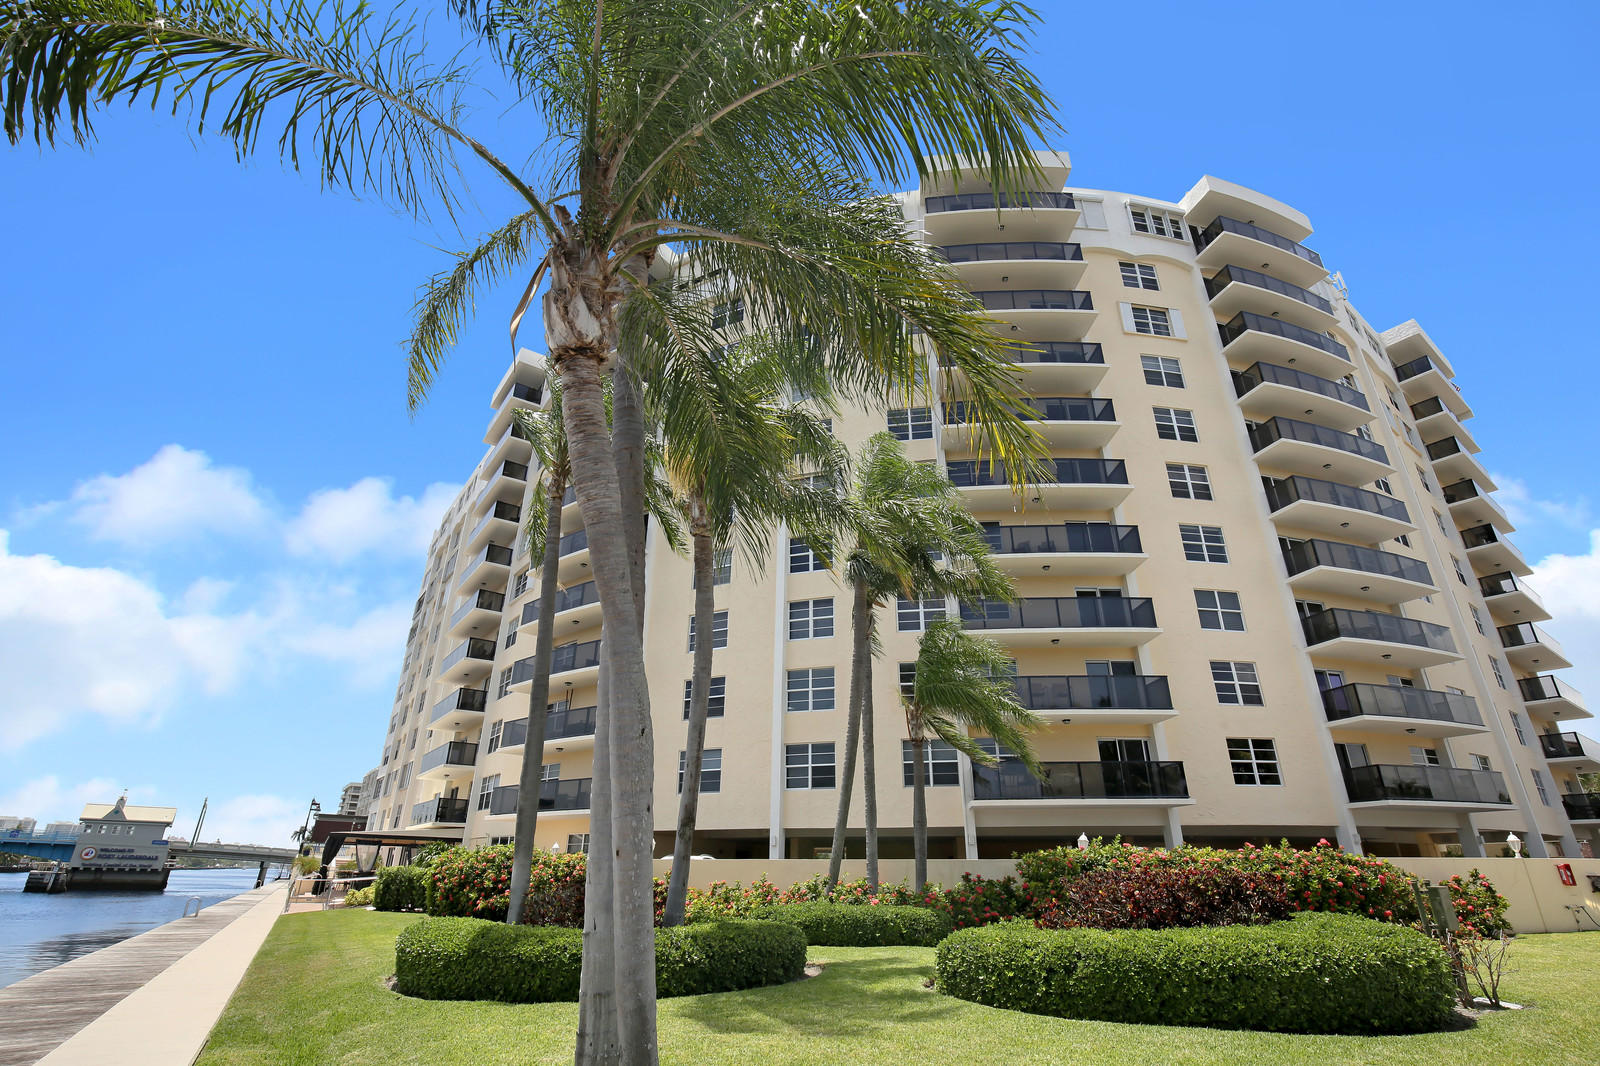 5100 Dupont Boulevard, Fort Lauderdale, Florida 33308, 2 Bedrooms Bedrooms, ,2.1 BathroomsBathrooms,Condo/Coop,For Sale,Dupont,10,RX-10454965